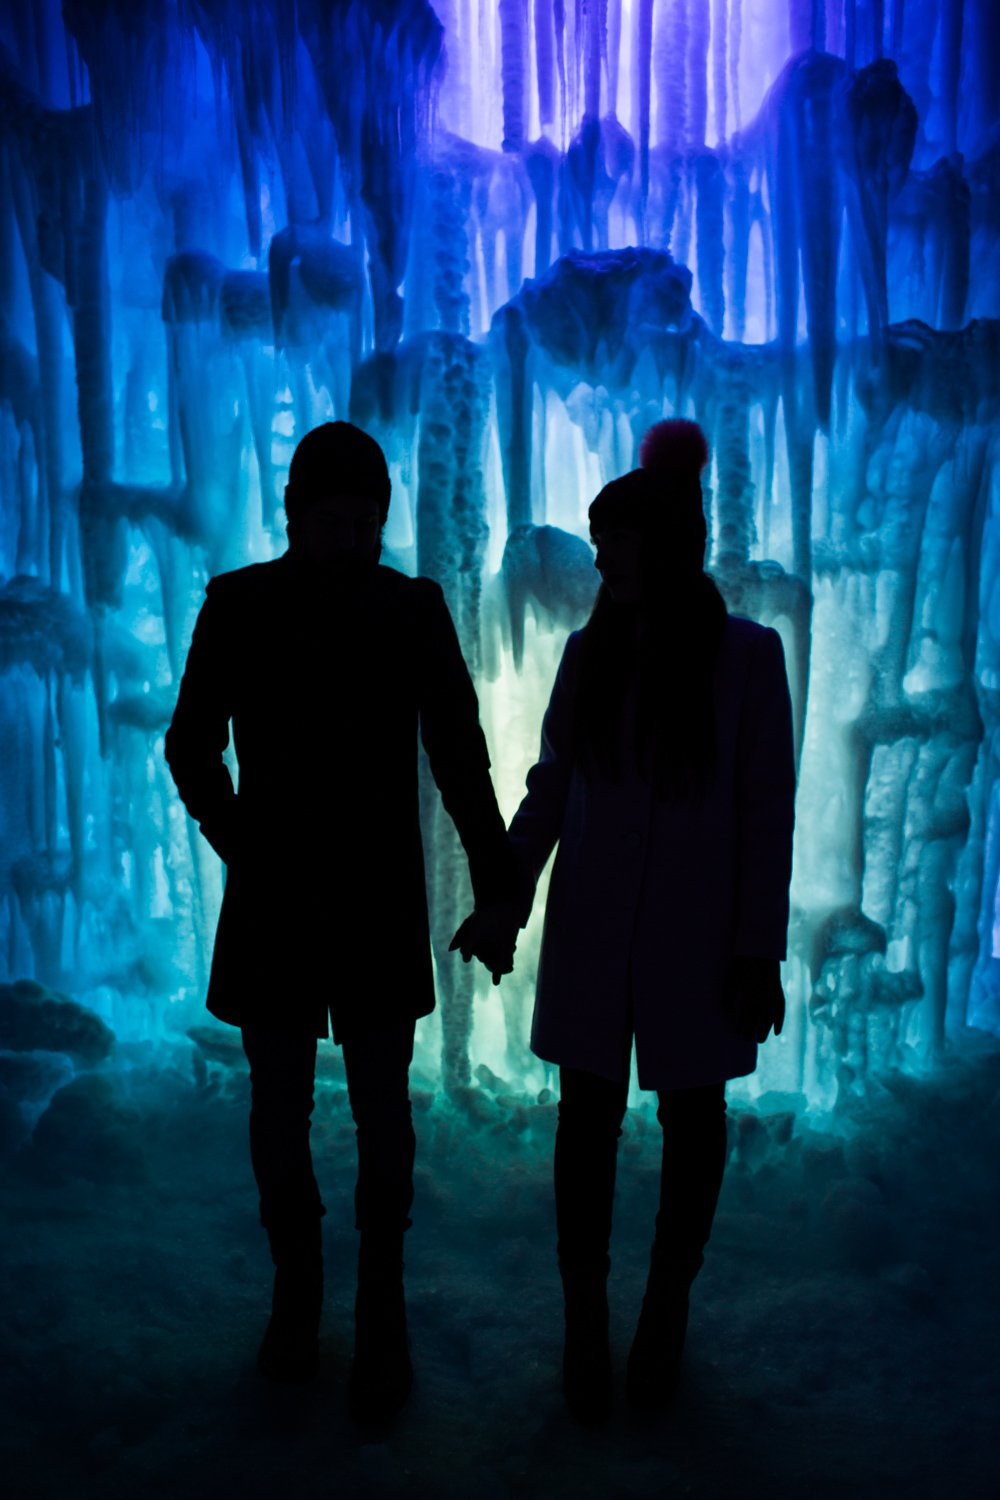 midway-ice-castles-zermont-homestead-2